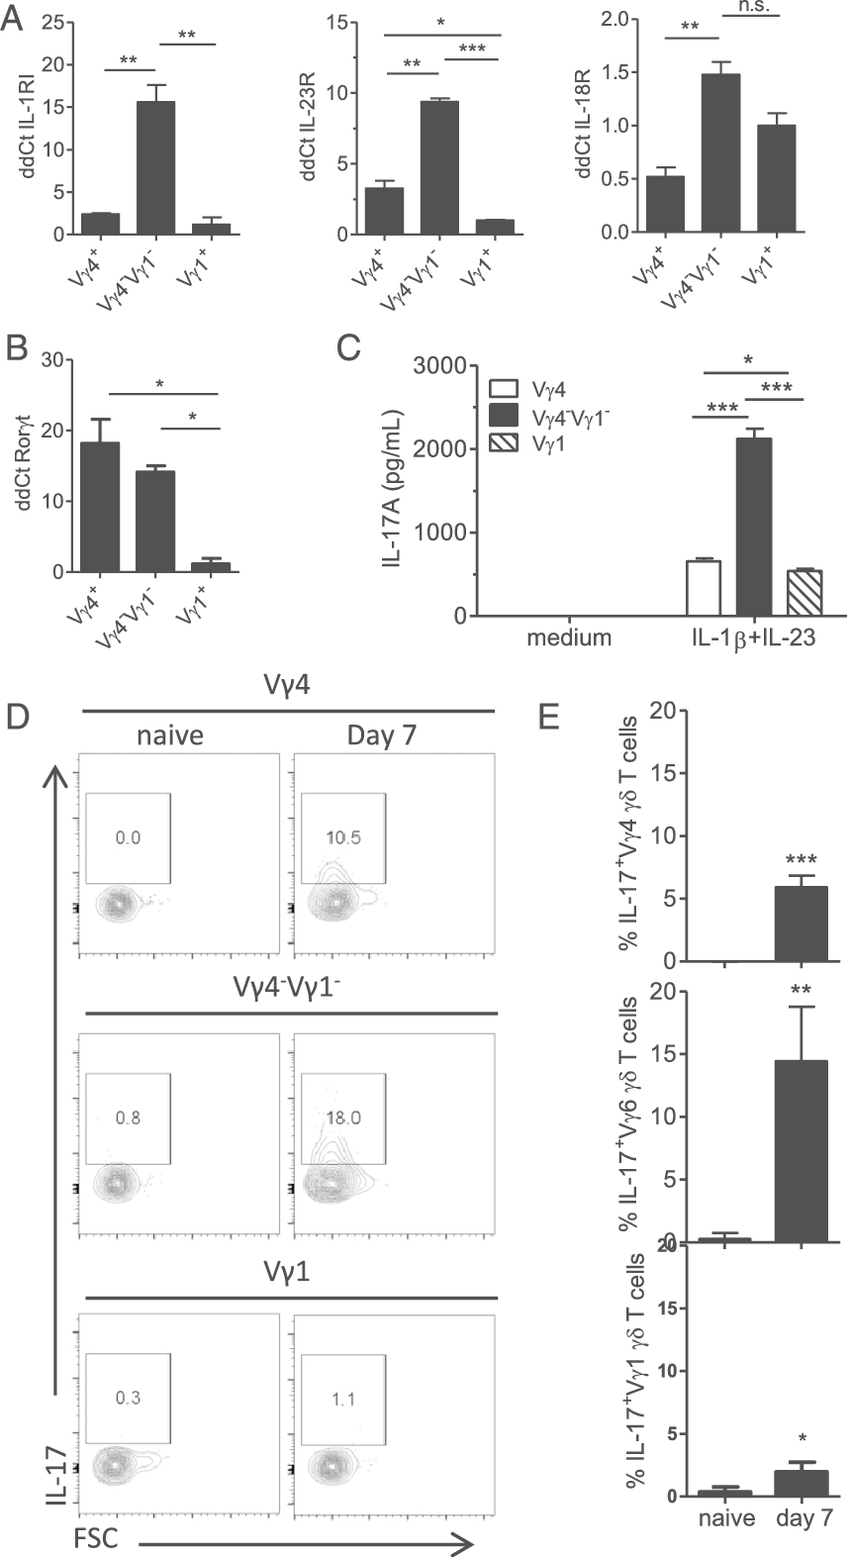 medium resolution of vg4 2 vg1 2 and vg4 gd t cells contribute to innate il 17 production during b pertussis infection vg1 vg4 and vg4 2 vg1 2 gd t cells 1 3 10 5